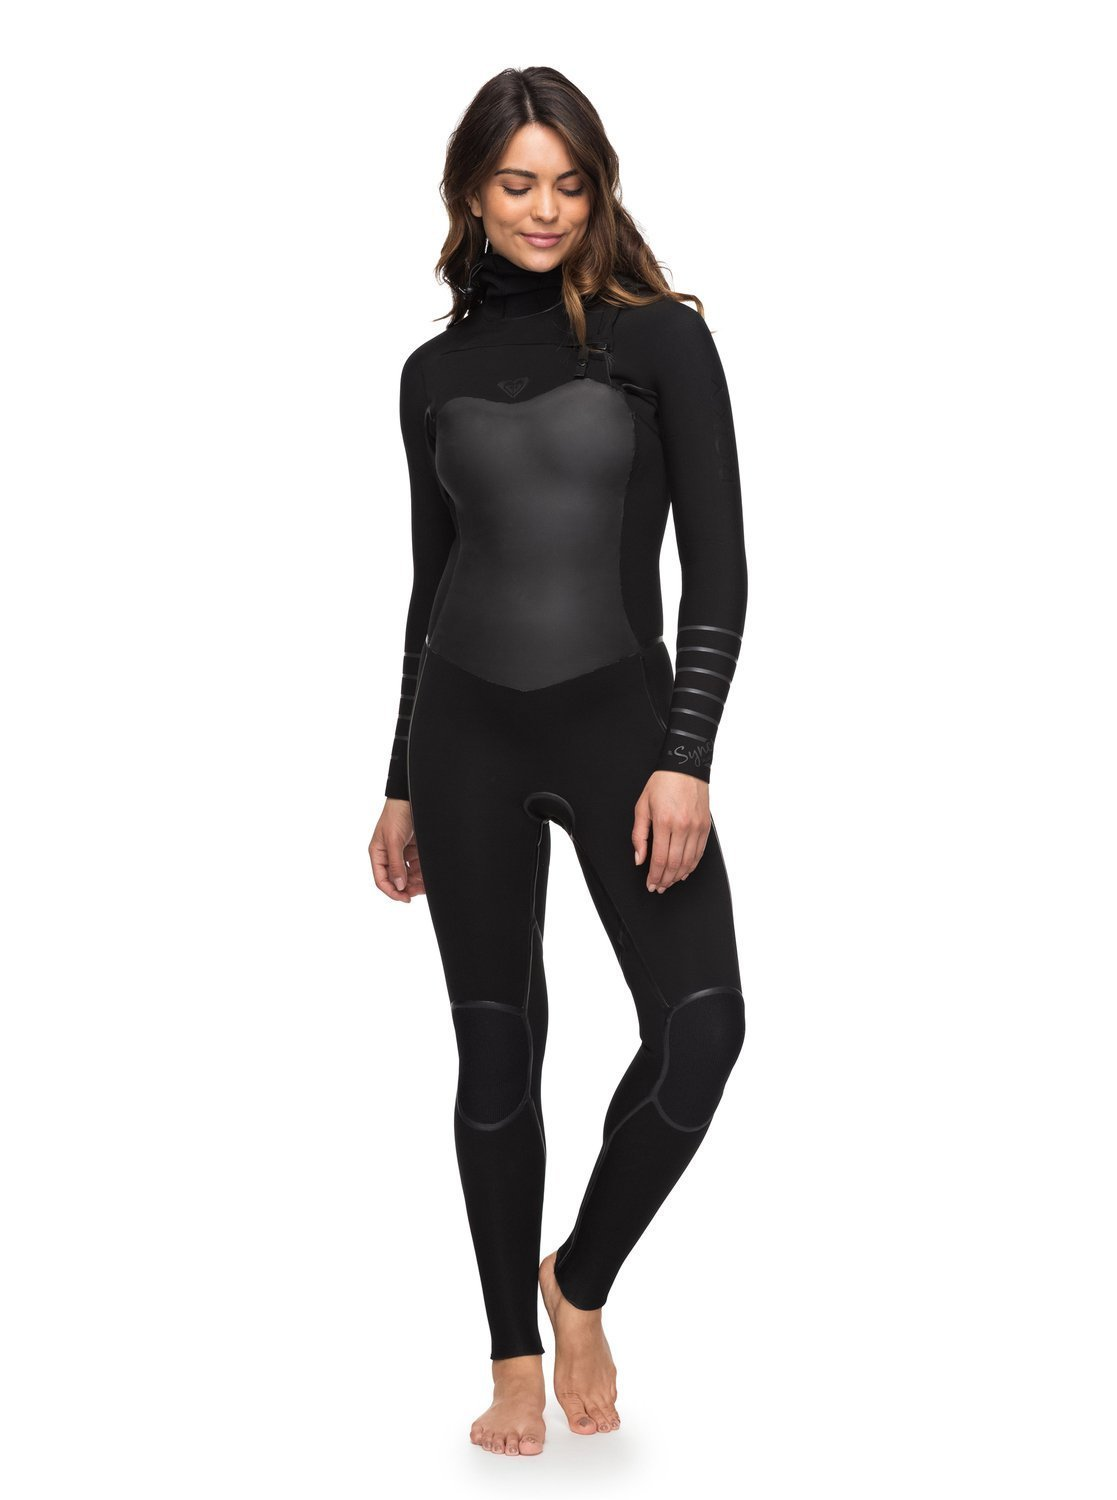 ab934524fd Amazon.com  Roxy Womens 5 4 3Mm Syncro Plus Hooded Chest Zip Wetsuit  Erjw203002  Sports   Outdoors